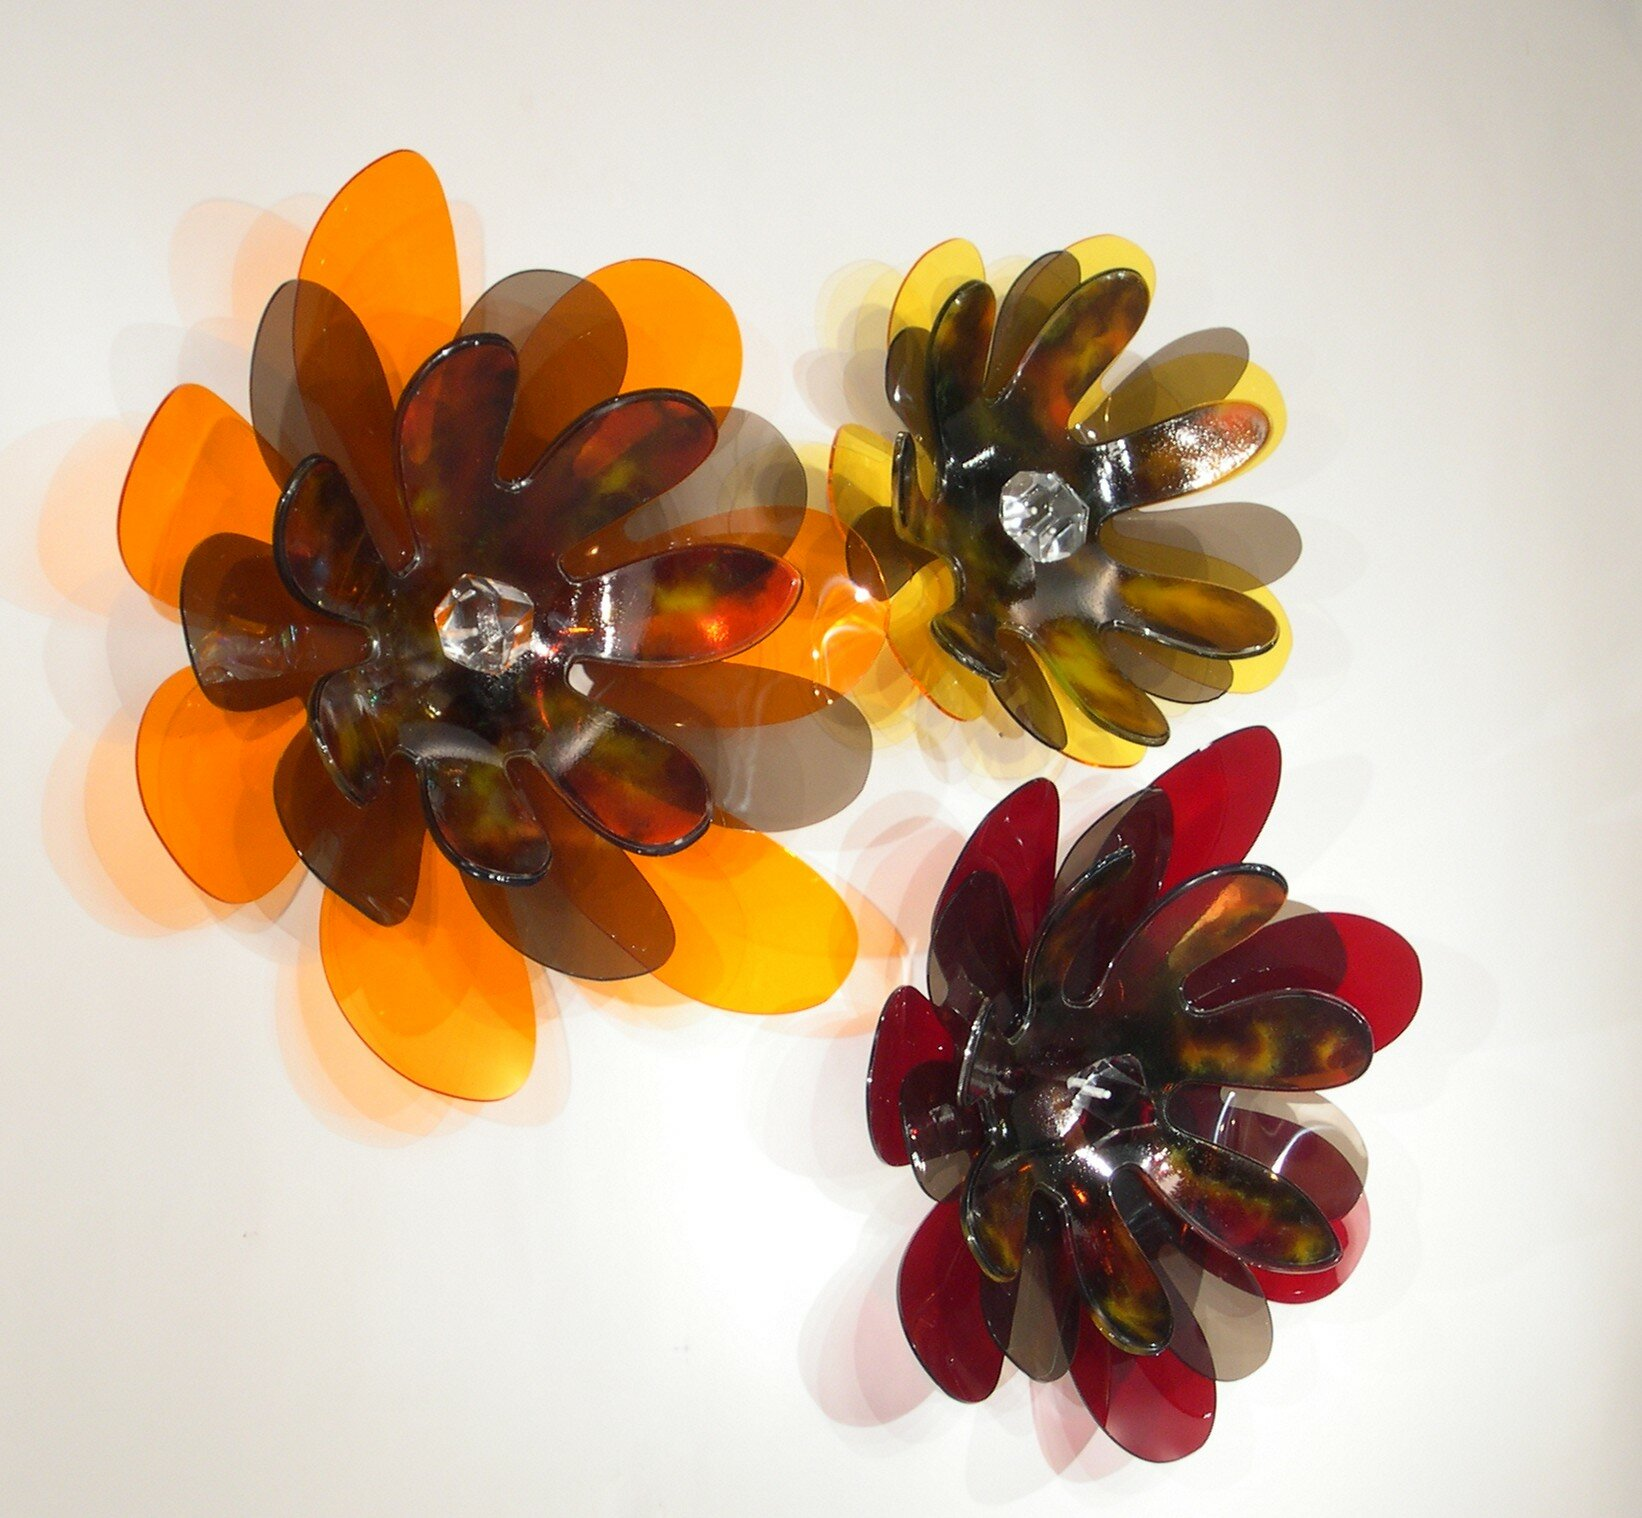 Shahrooz Flower Mod Acrylic Sculpture Wall Decor